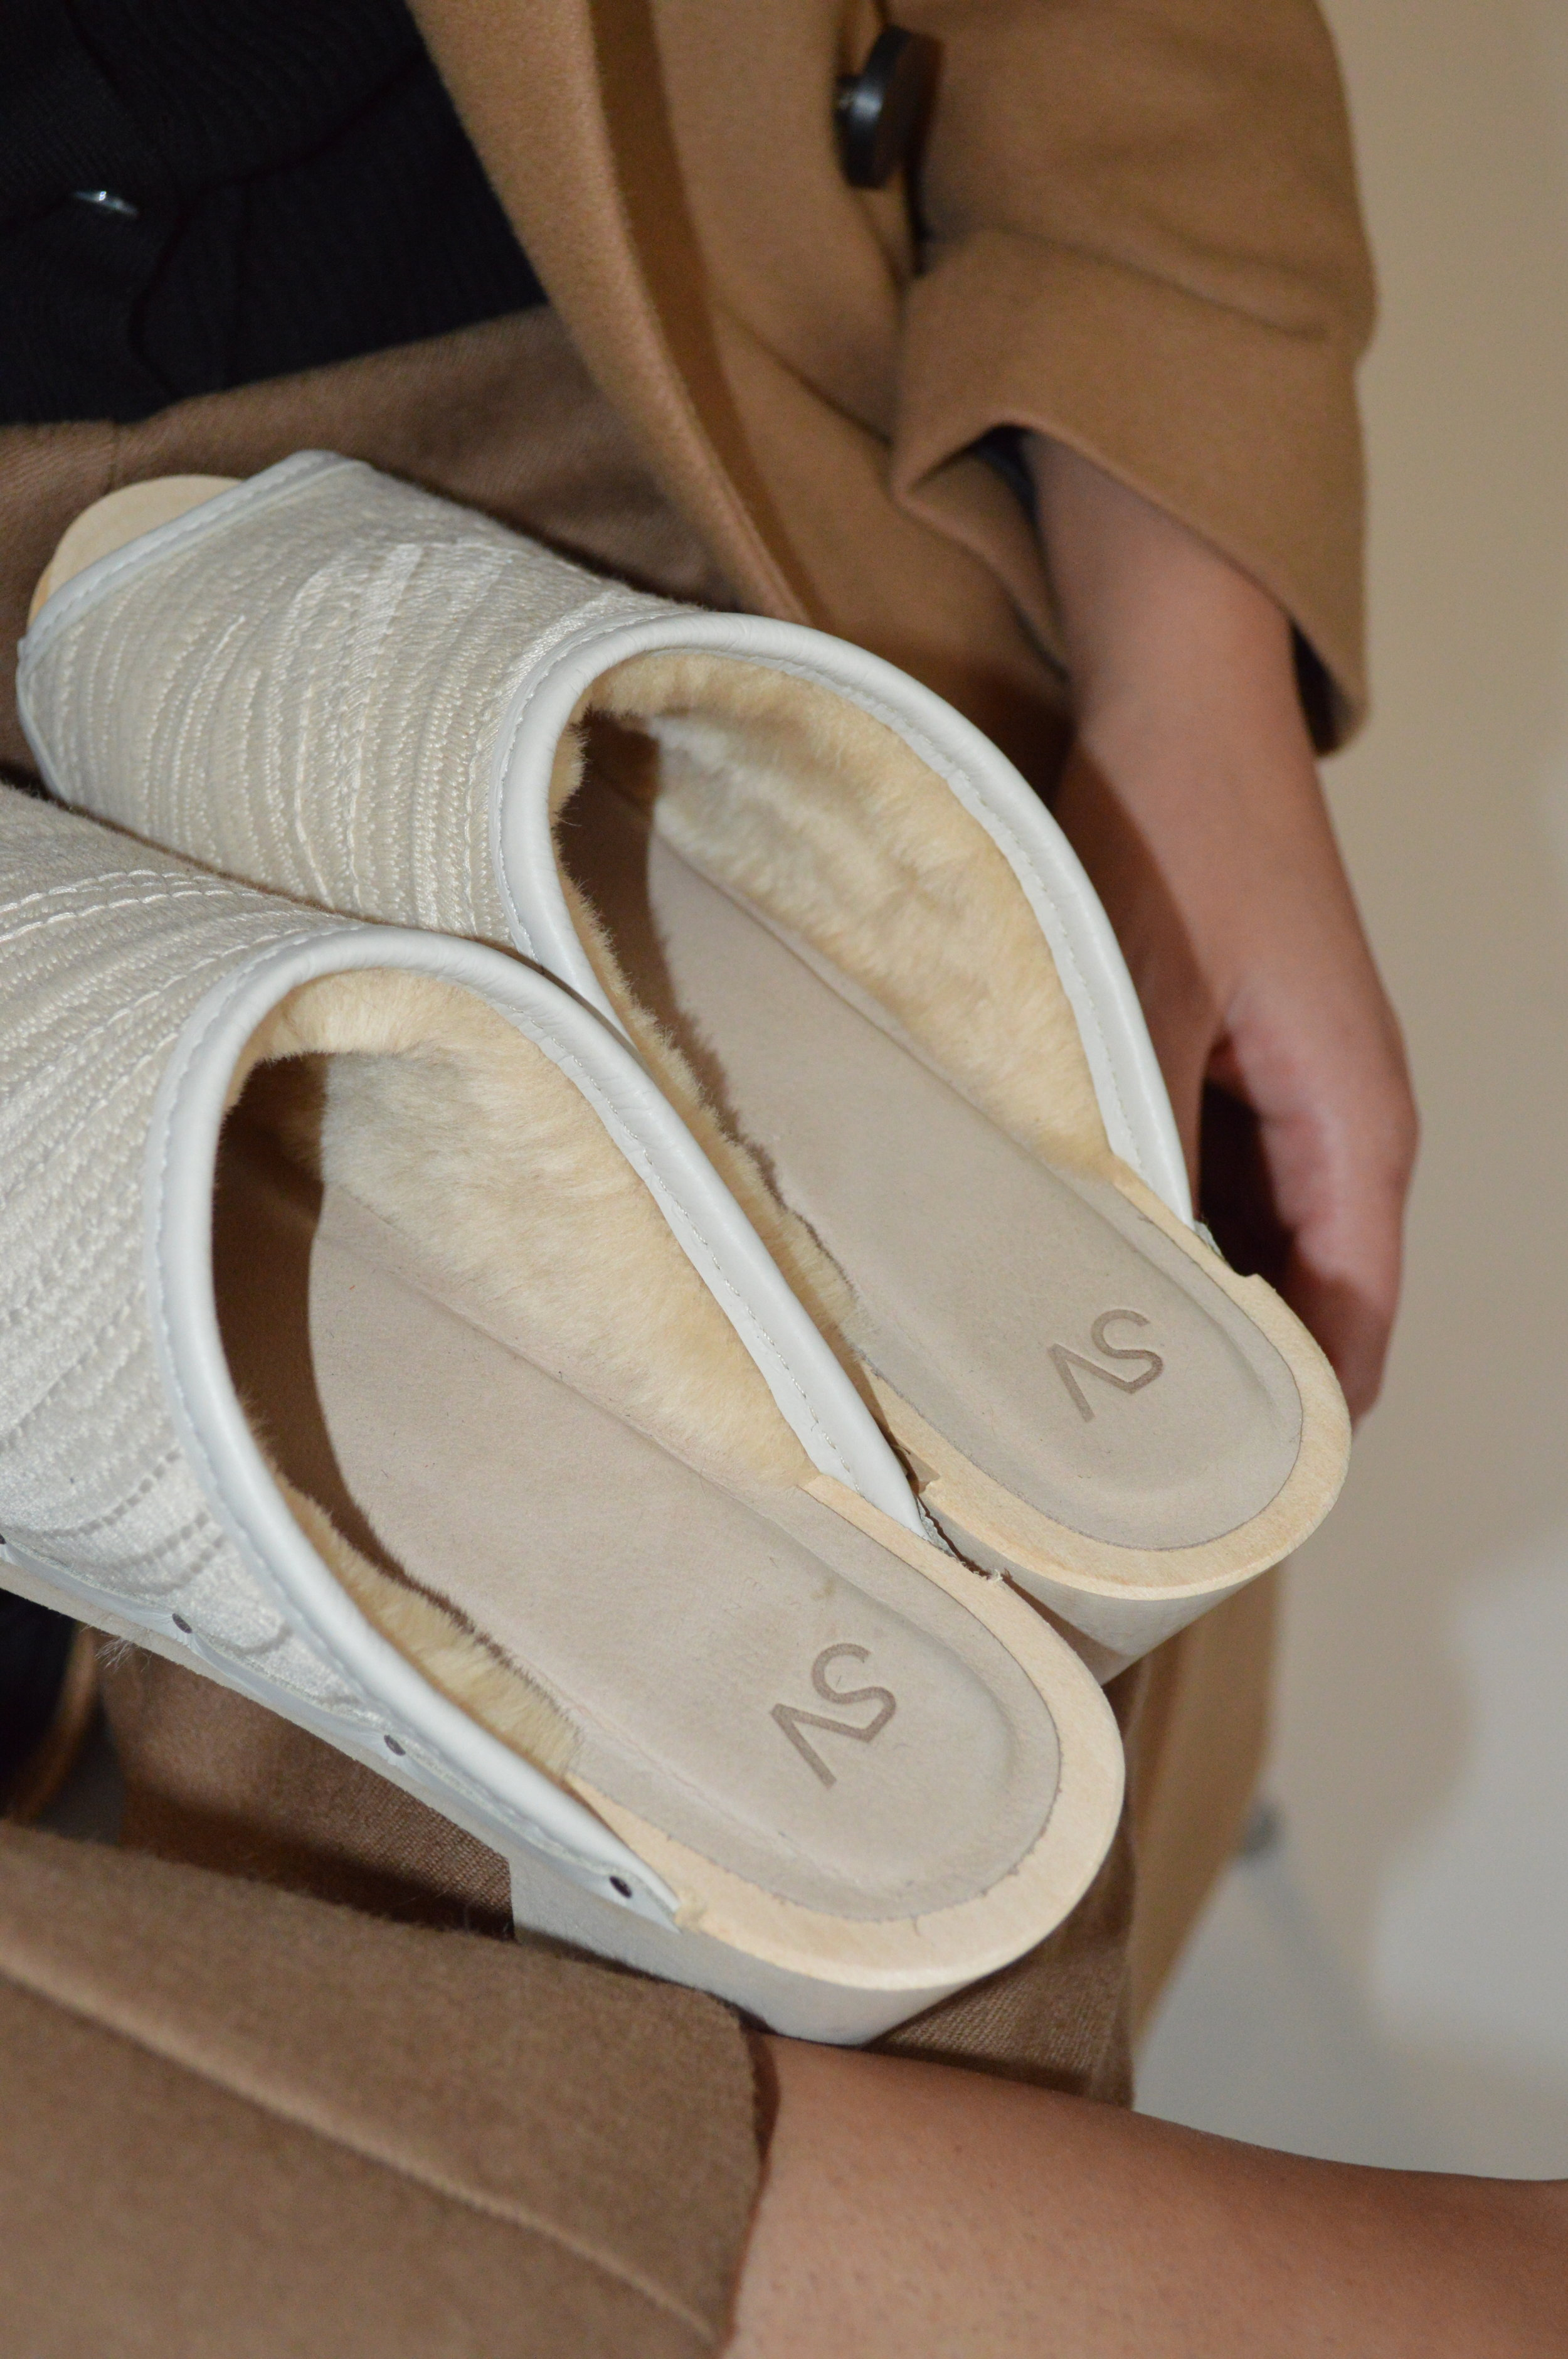 GUARDIAN ANGEL - Ivory Shannon Shearling Lined; a super special splurge reserved for your most beloved - your Mom, your Mentor, yourself… :)